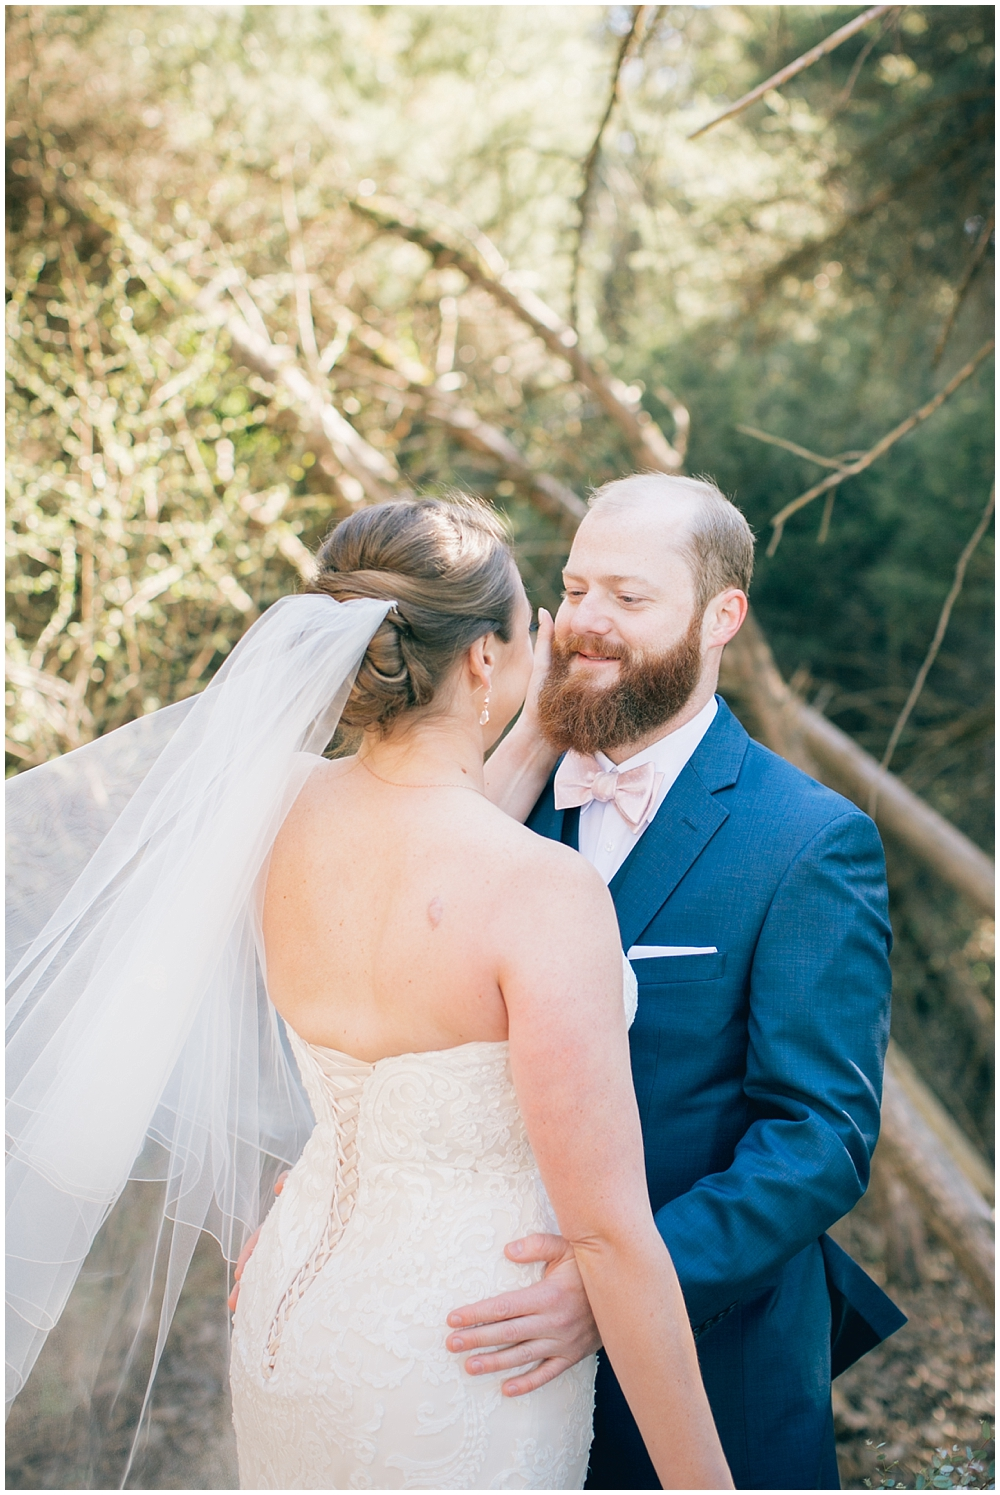 PattengalePhotography_StLouis_Wedding_Photographer_Boho_Hipster_Urban_Style_StCharles_Missouri_BullRunWinery_Charlottesville_Ashley&Sawyer_0060.jpg